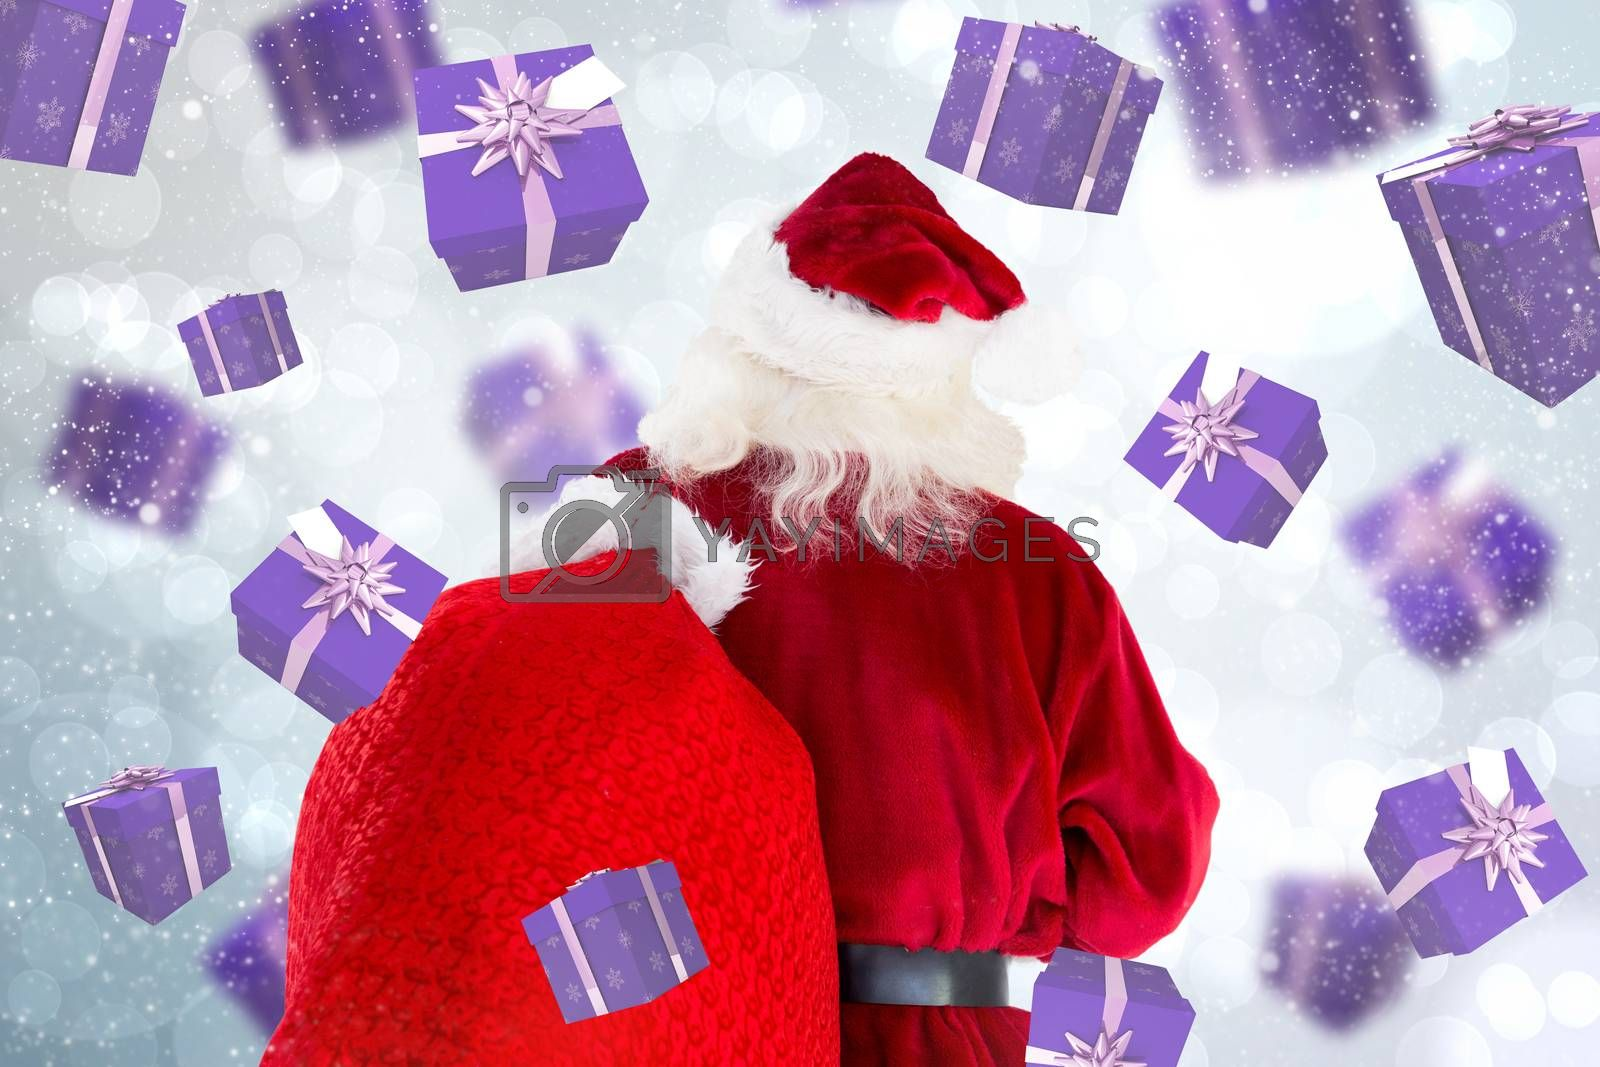 Santa claus carrying sack against light glowing dots design pattern